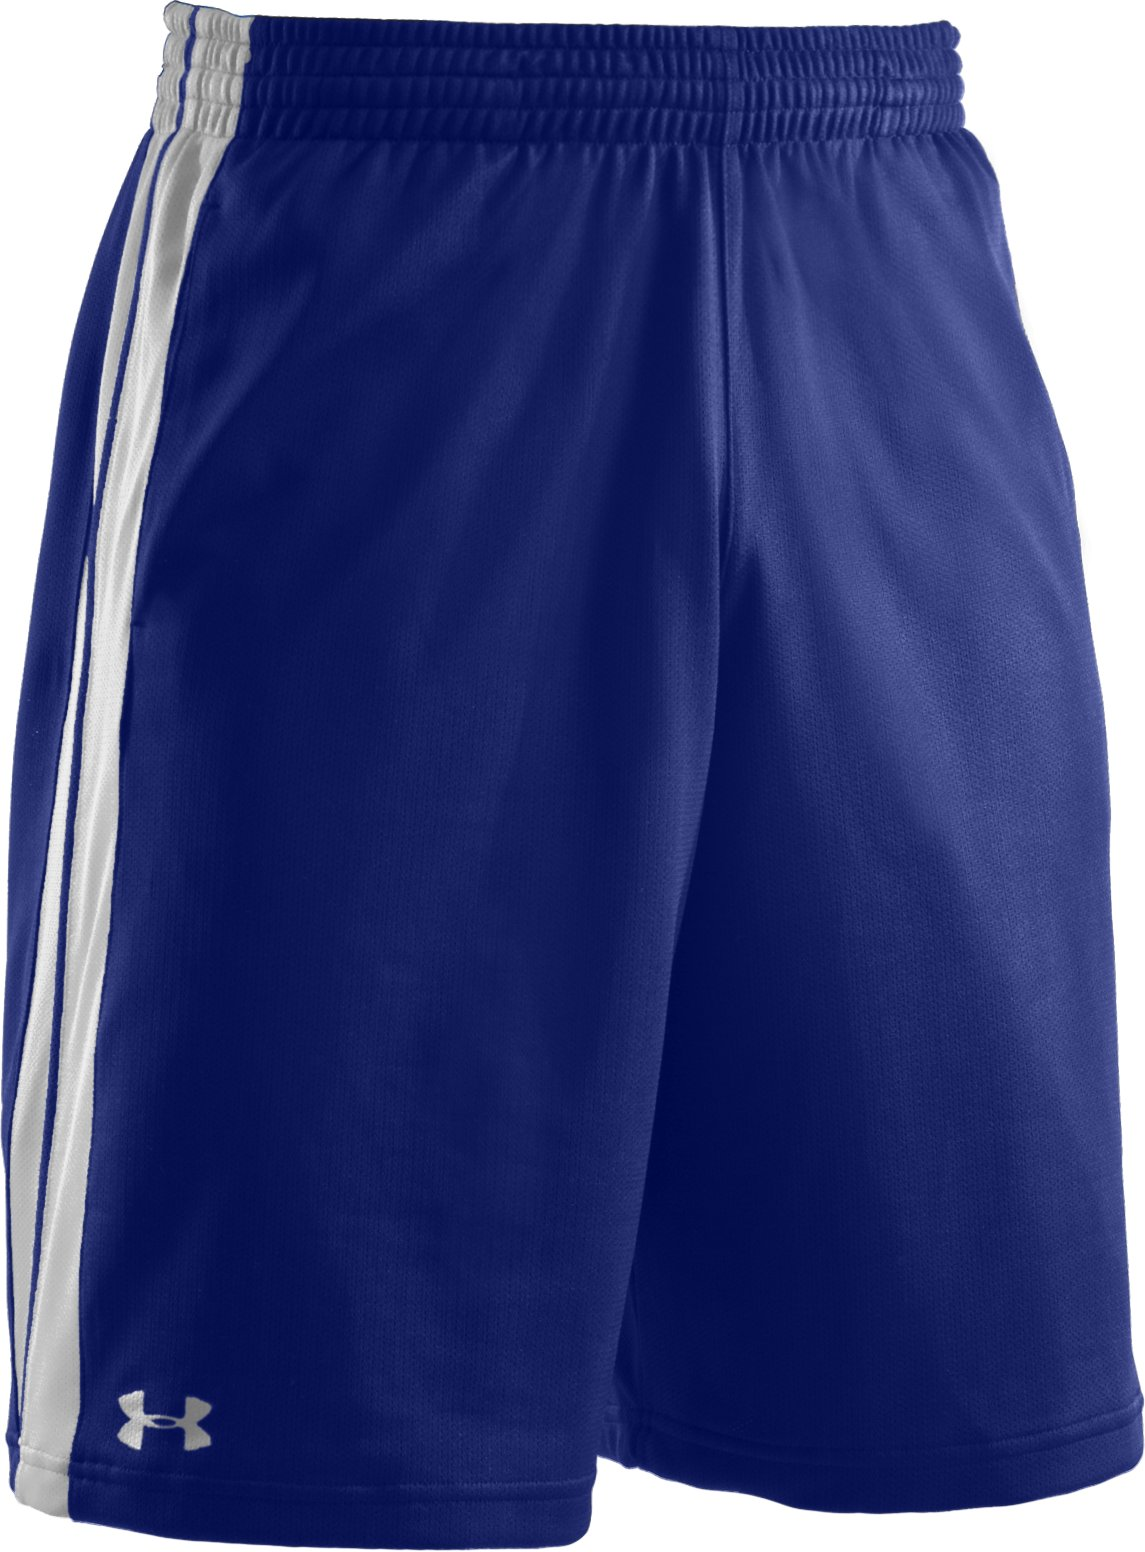 "Men's 10"" Basketball Practice Shorts, Royal, undefined"